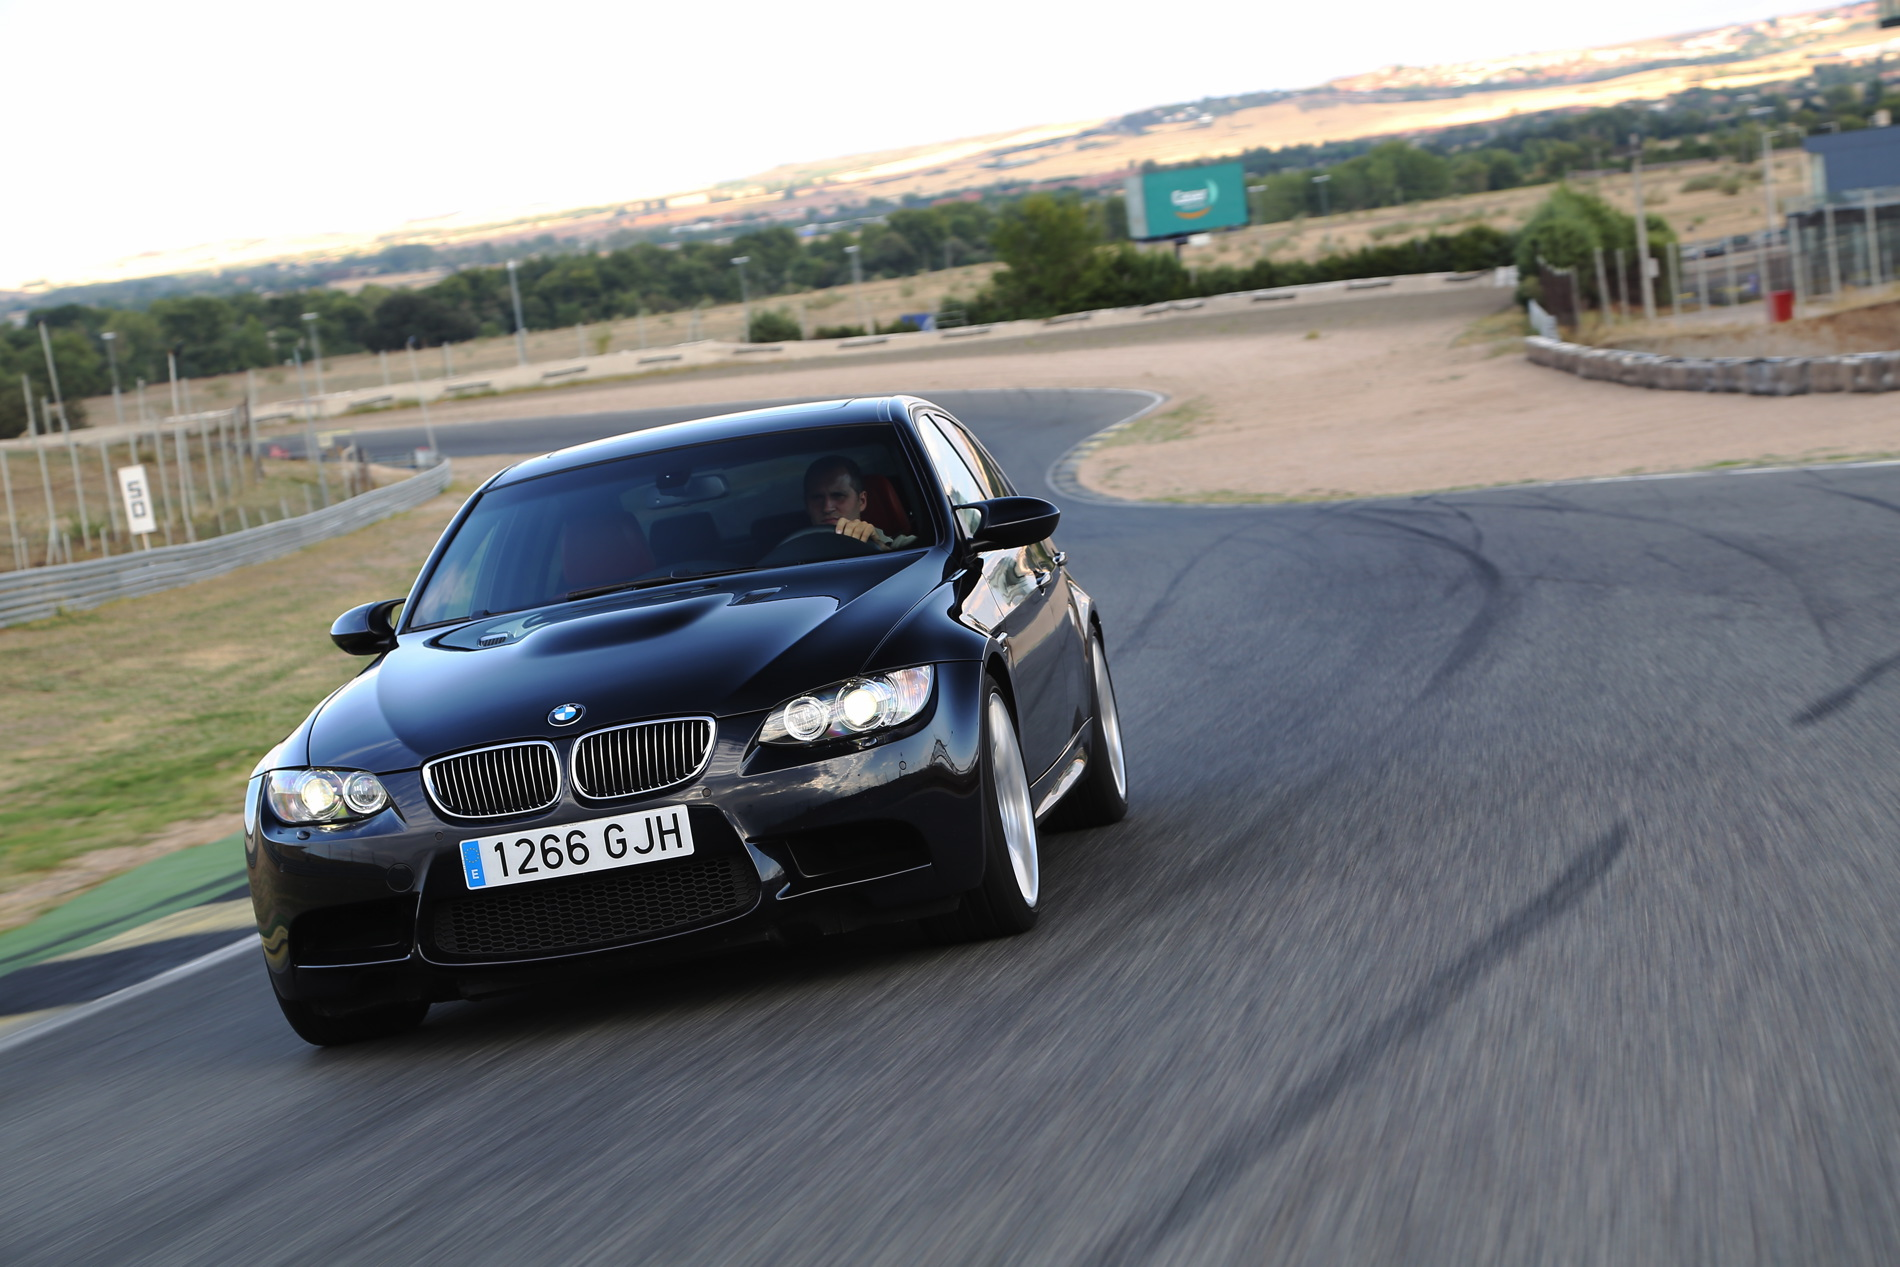 The Bmw E90 M3 Is Still Quite A Looker Fuse Box Location Images 4